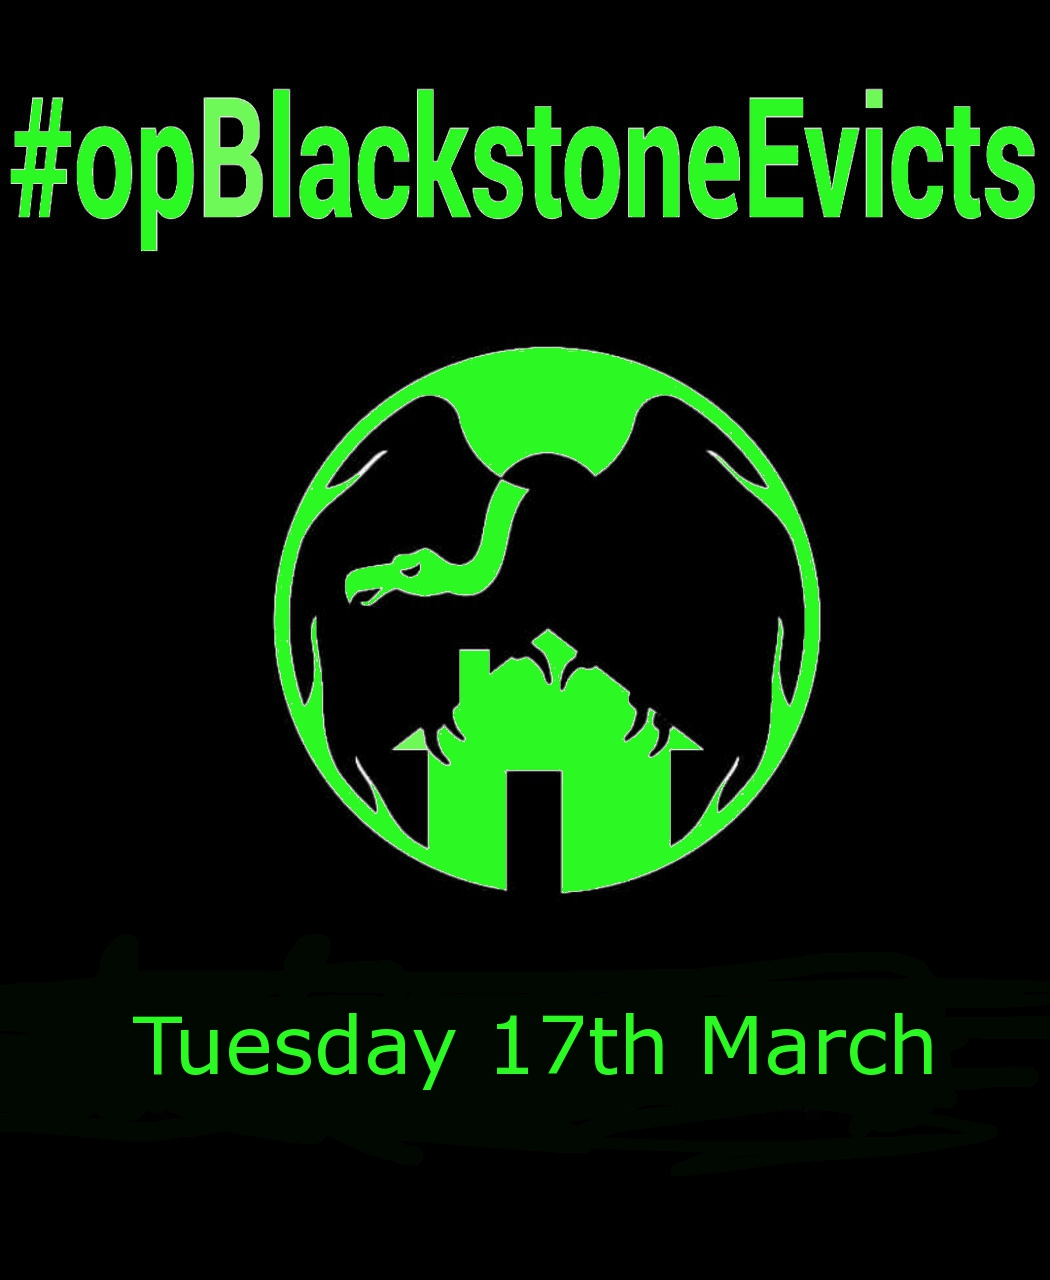 #opBlackstoneEvicts The PAH, together with collectives in New York and London, we increase the pressure to Blackstone